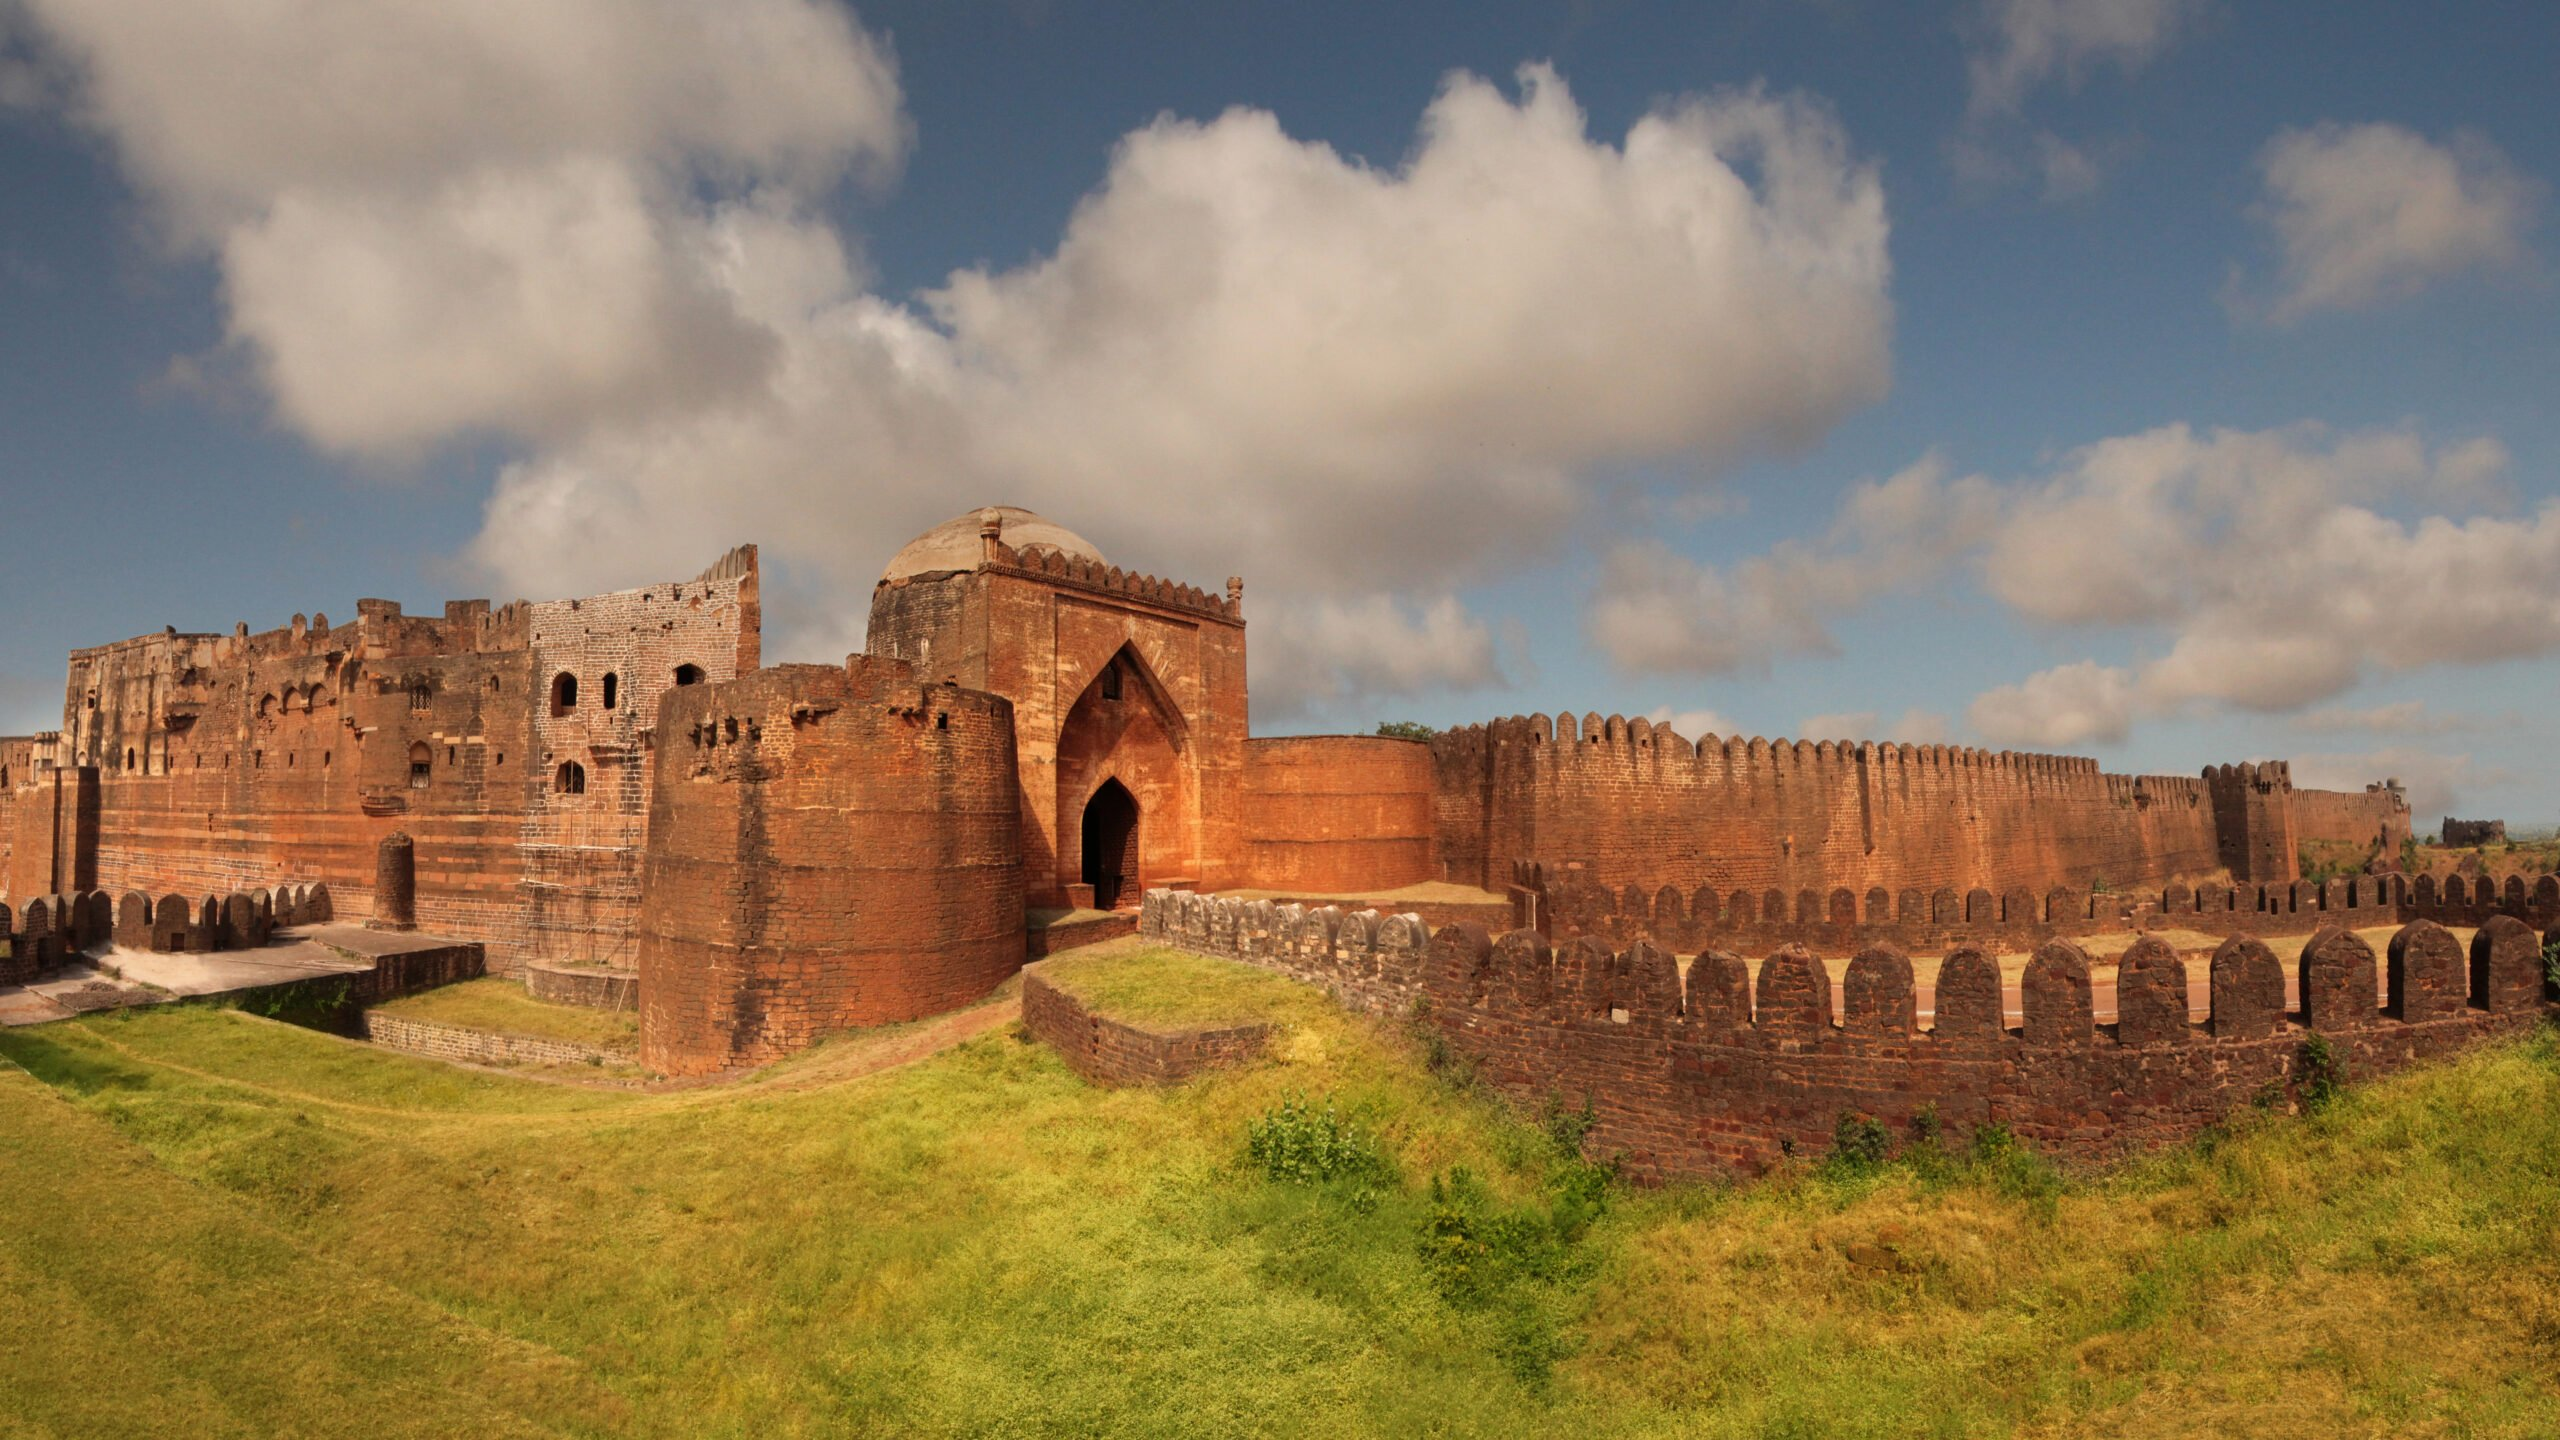 Appreciate This Architectural Marvels Of Bidar Fort In Our 2 Day Legacy Of Sultans & Wildlife Tour In Bidar